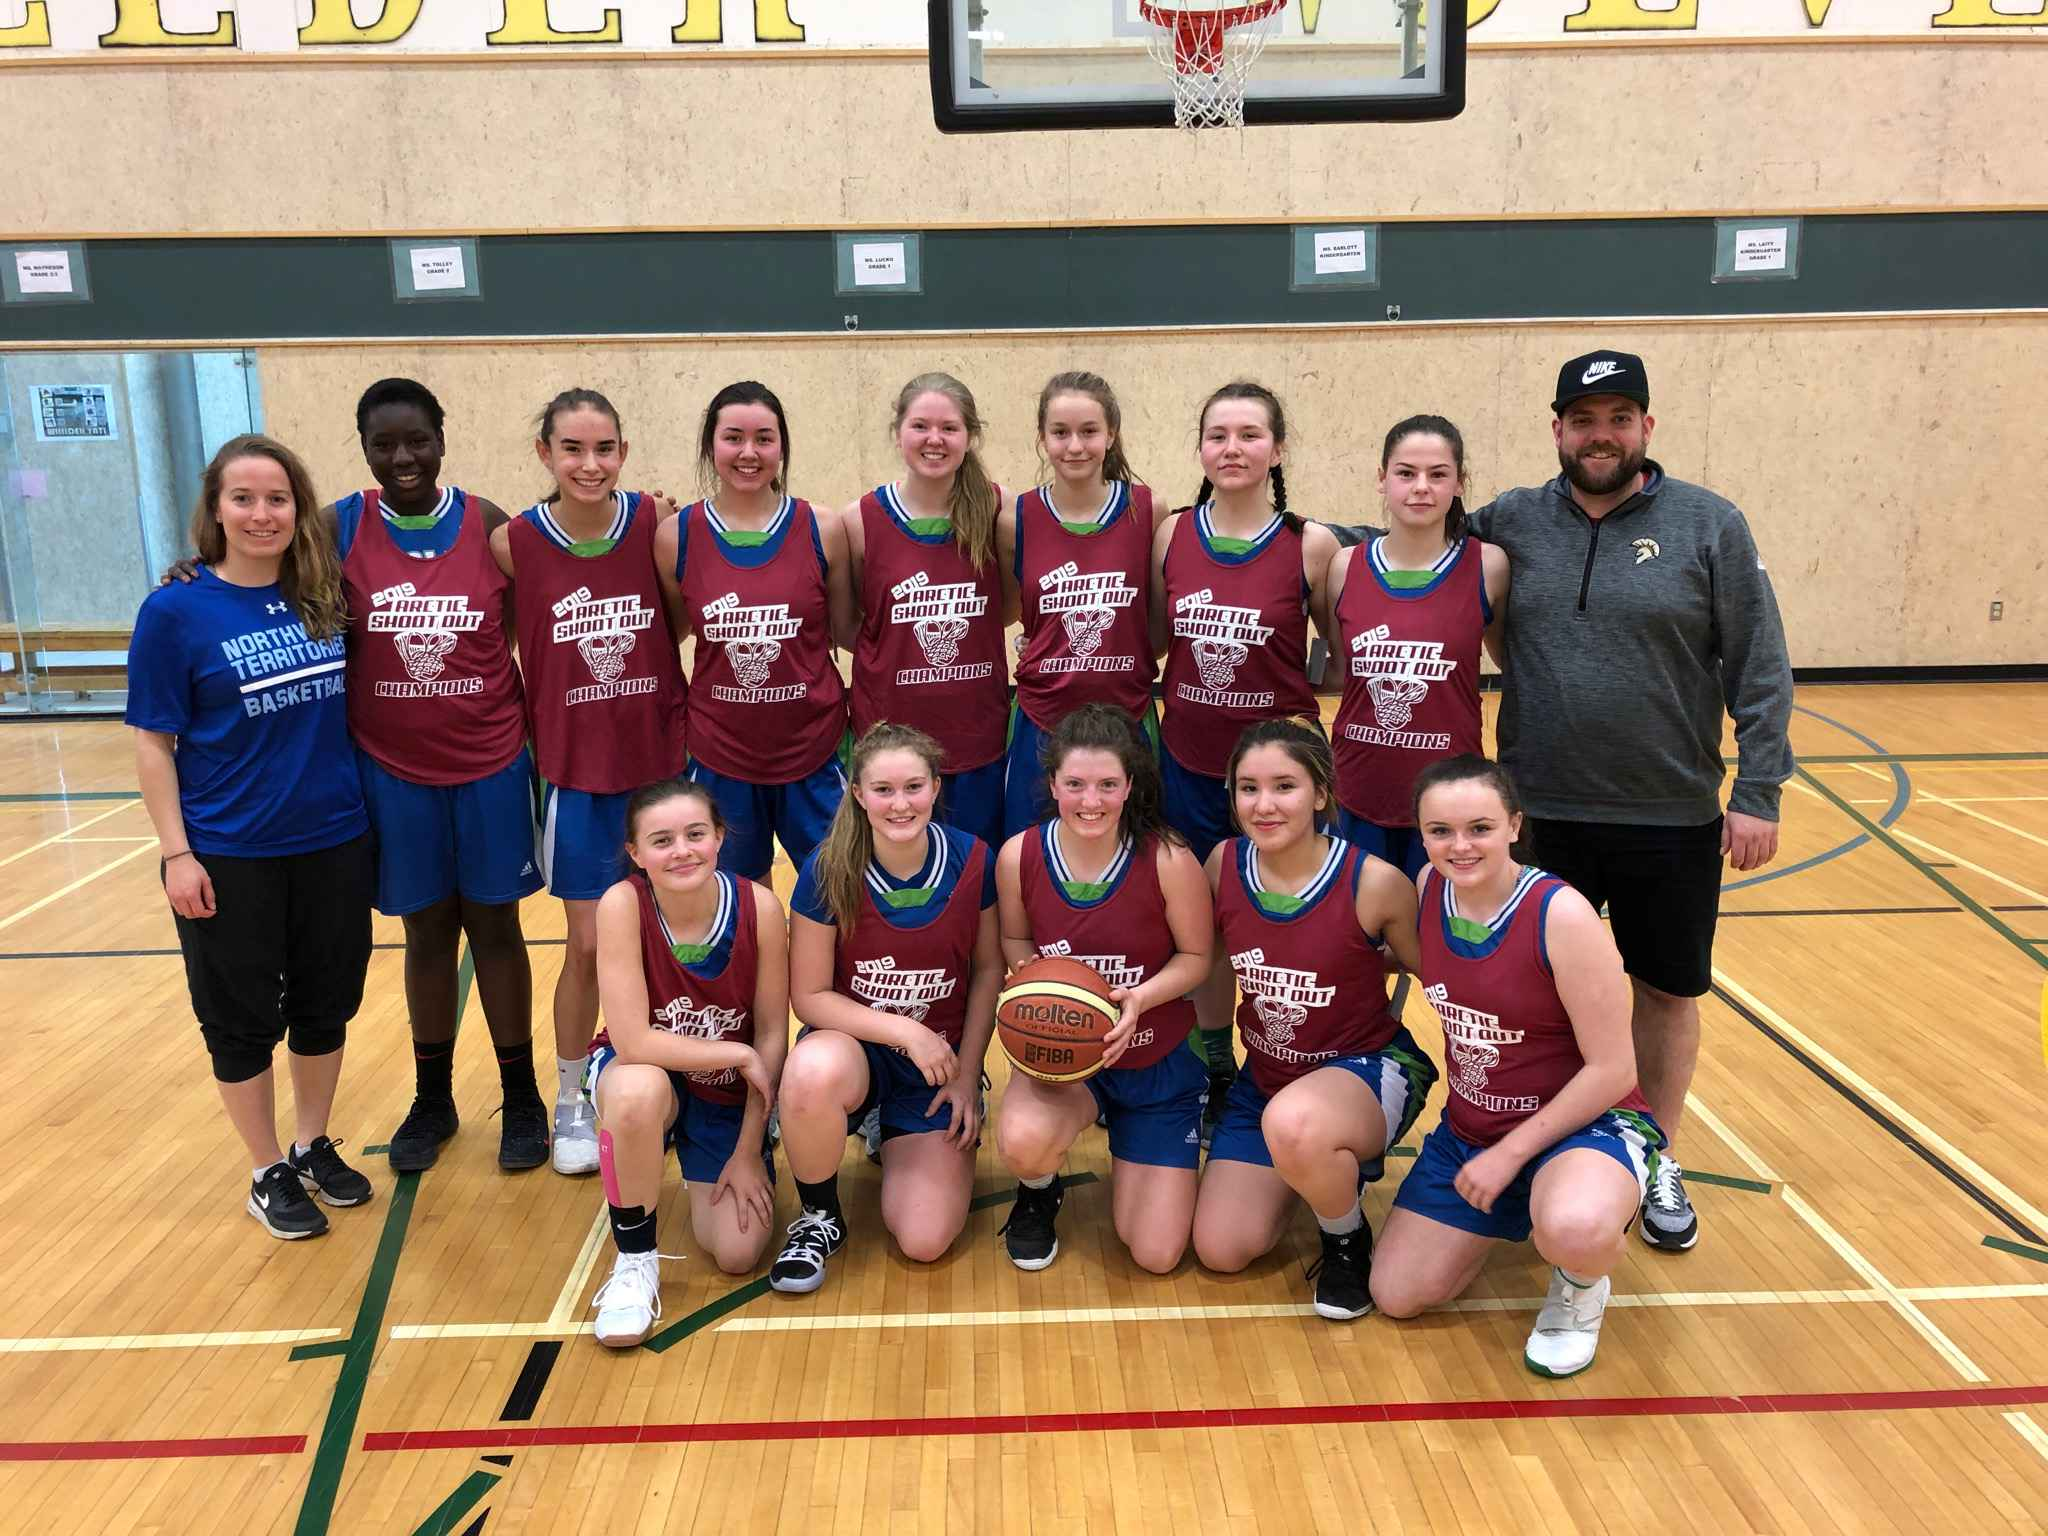 The Deton Cho Eagles are your women's Arctic Shoot-Out champions after beating the Funky Bunch in the final on Sunday at Weledeh Gymnasium. They are, front row from left, Lily Newberry, Mali Straker, Mia MacInnis, Naomi Yukon and Kaitlyn Kenny; back row from left, assistant coach Claire Mennell, Jordan Muchenje, Elle Mitchener, Meadow Munroe, Emma Willoughby, Taya Straker, Lili Casaway, Drew Wolfe and head coach Aaron Wells. photo courtesy of Cole Marshall